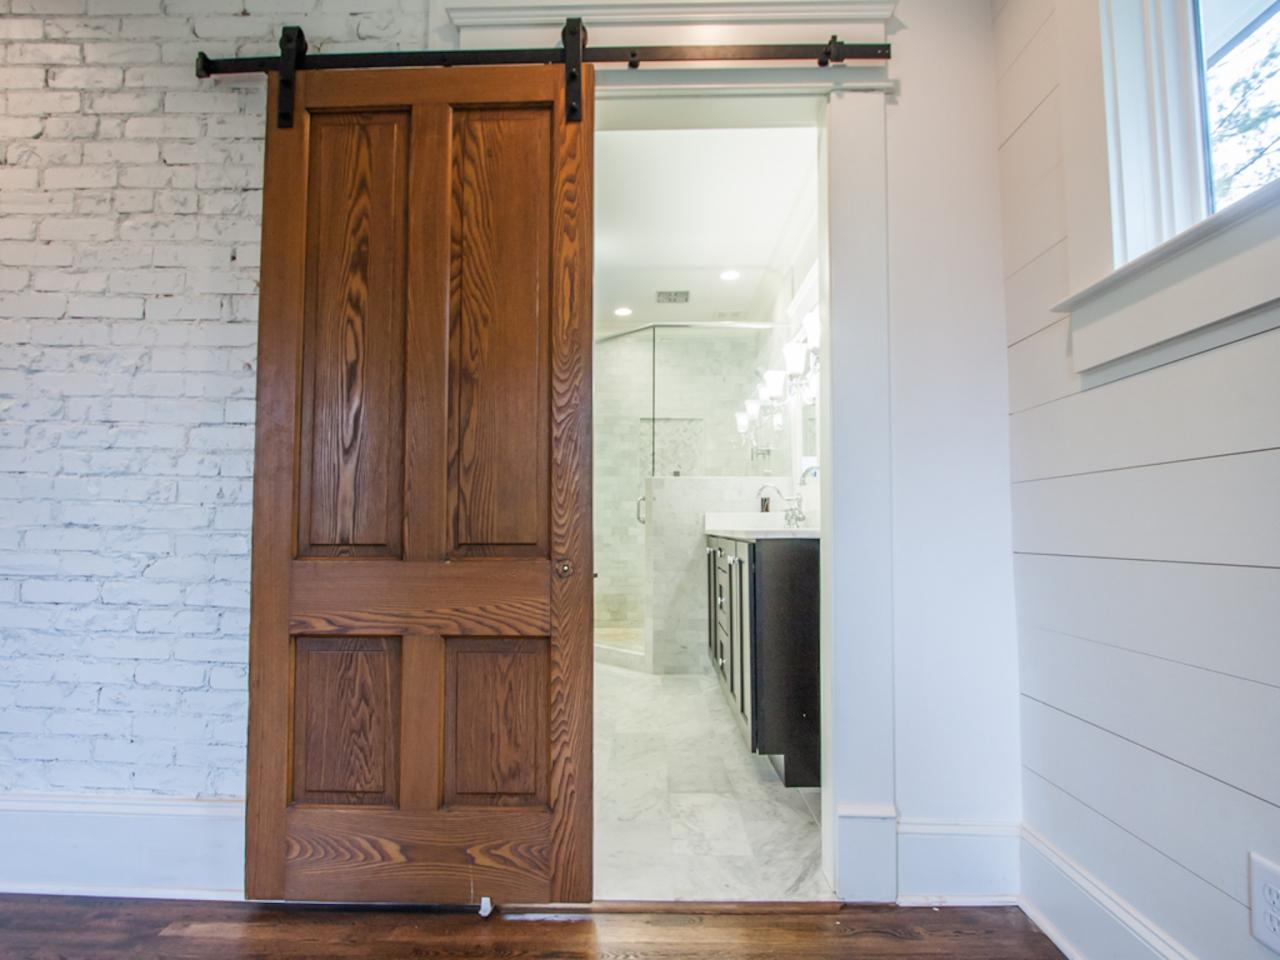 Ordinaire Sliding Door In Bathroom Entryway